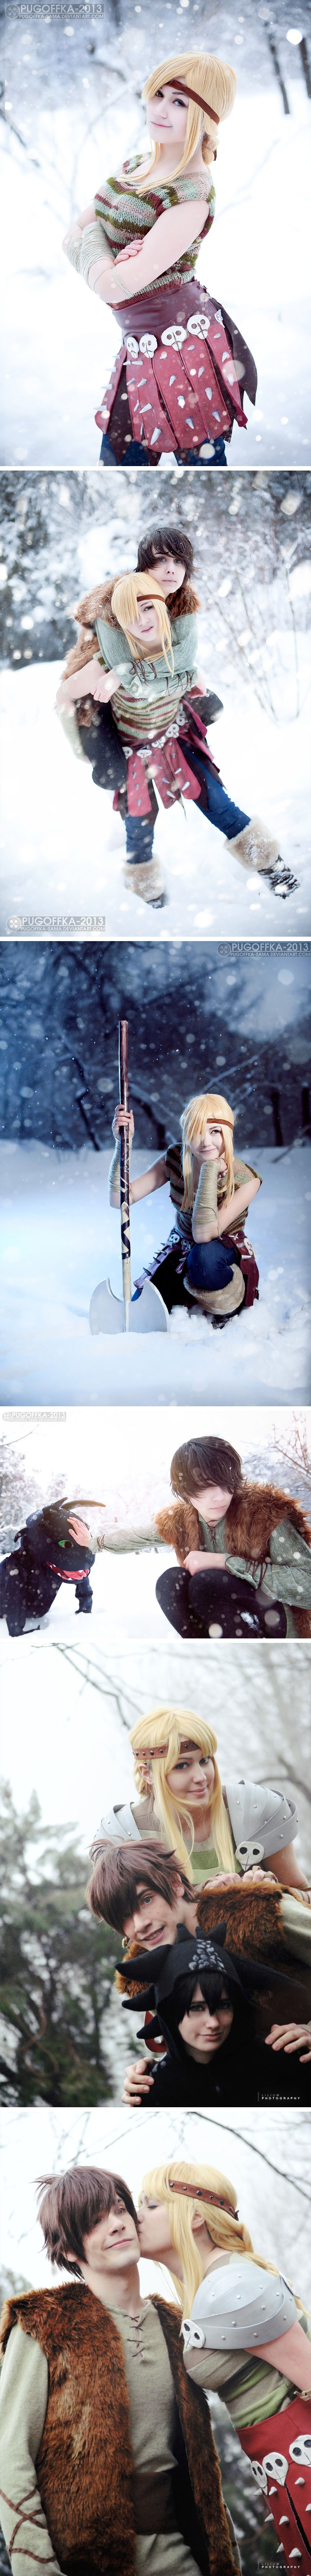 Astrid, How to Train Your Dragon | http://pugoffka-sama.deviantart.com/art/Astrid-How-to-Train-Your-Dragon-356981357#